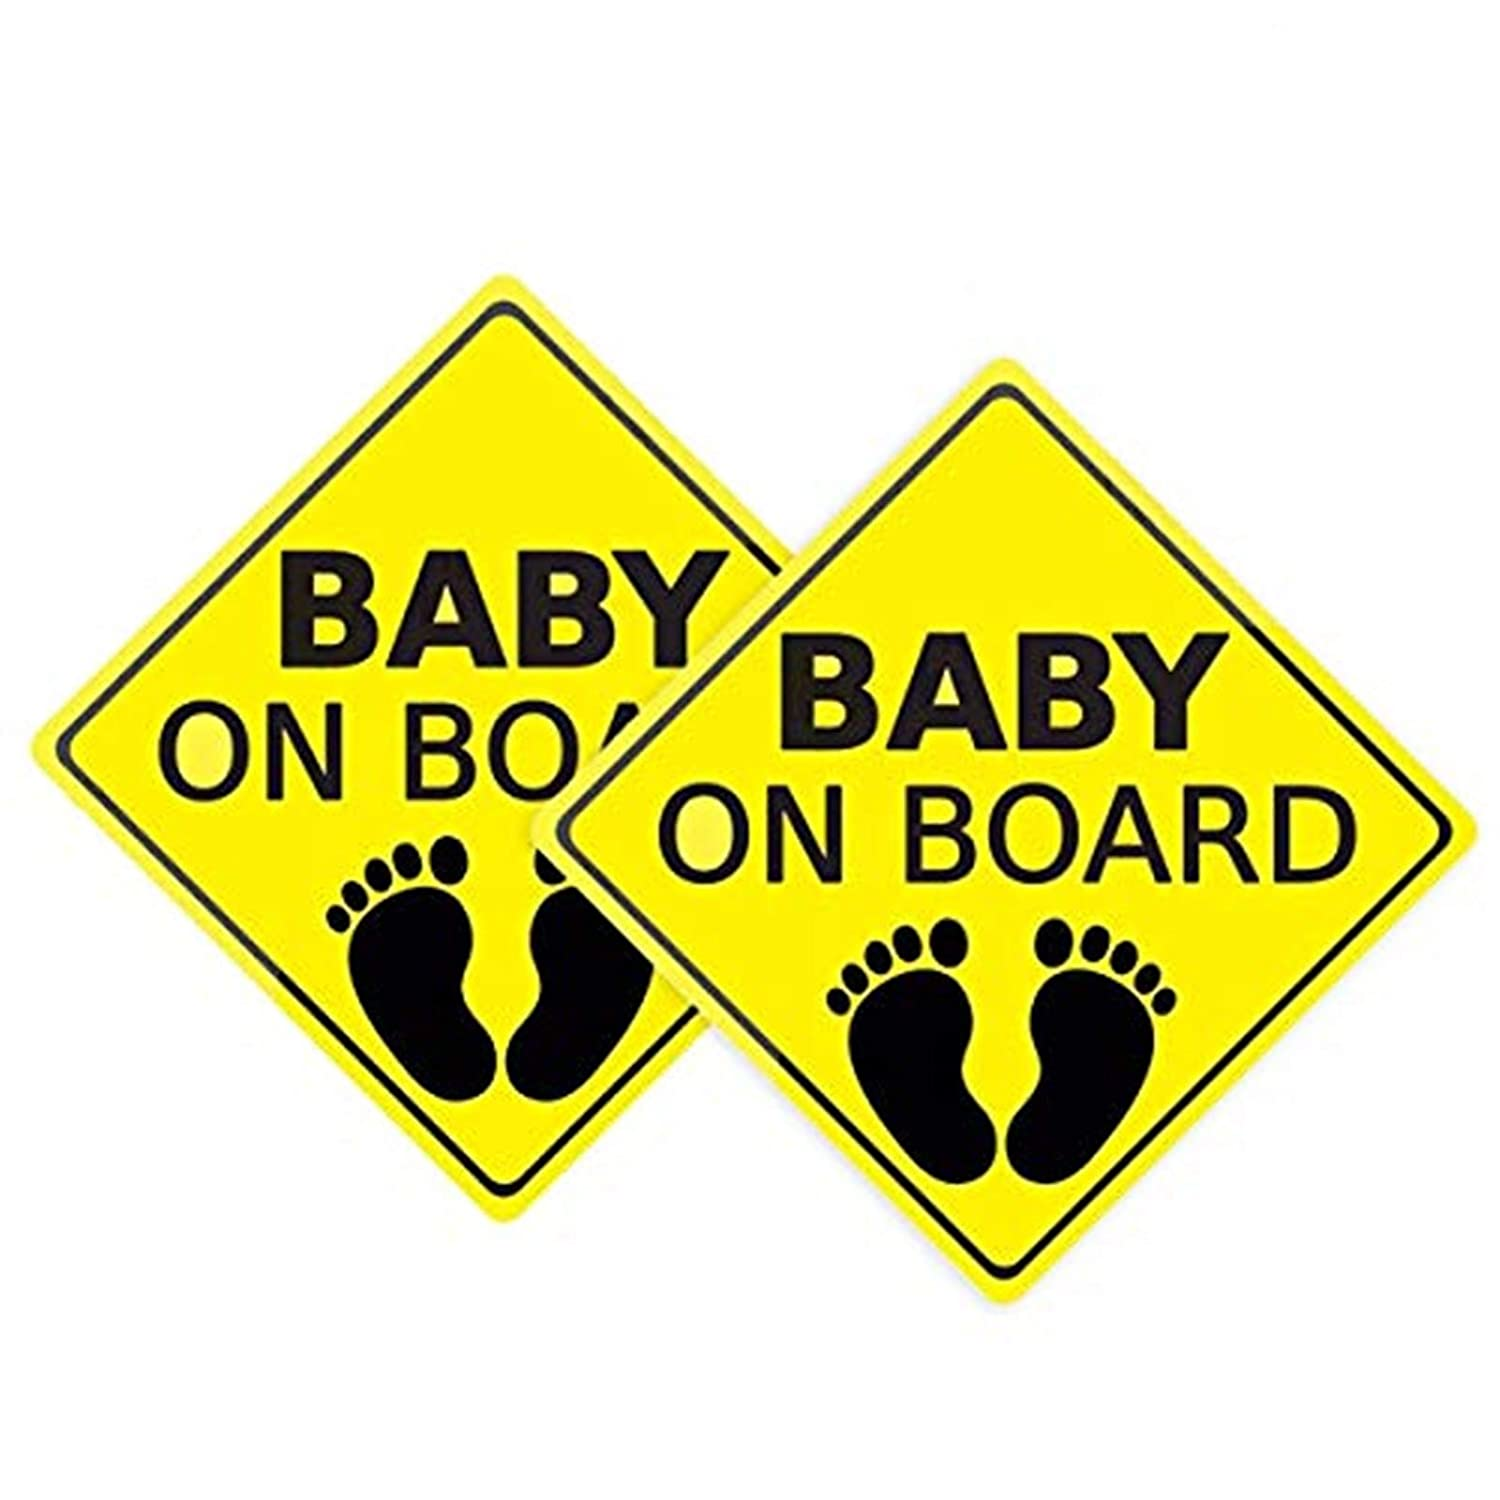 Baby ON Board Sticker for Cars, Baby On Board Sticker Sign, Reflective Vehicle Board Decal Sign, Car Decals Safety Signs Self, No Need for Suction Cup or Magnets